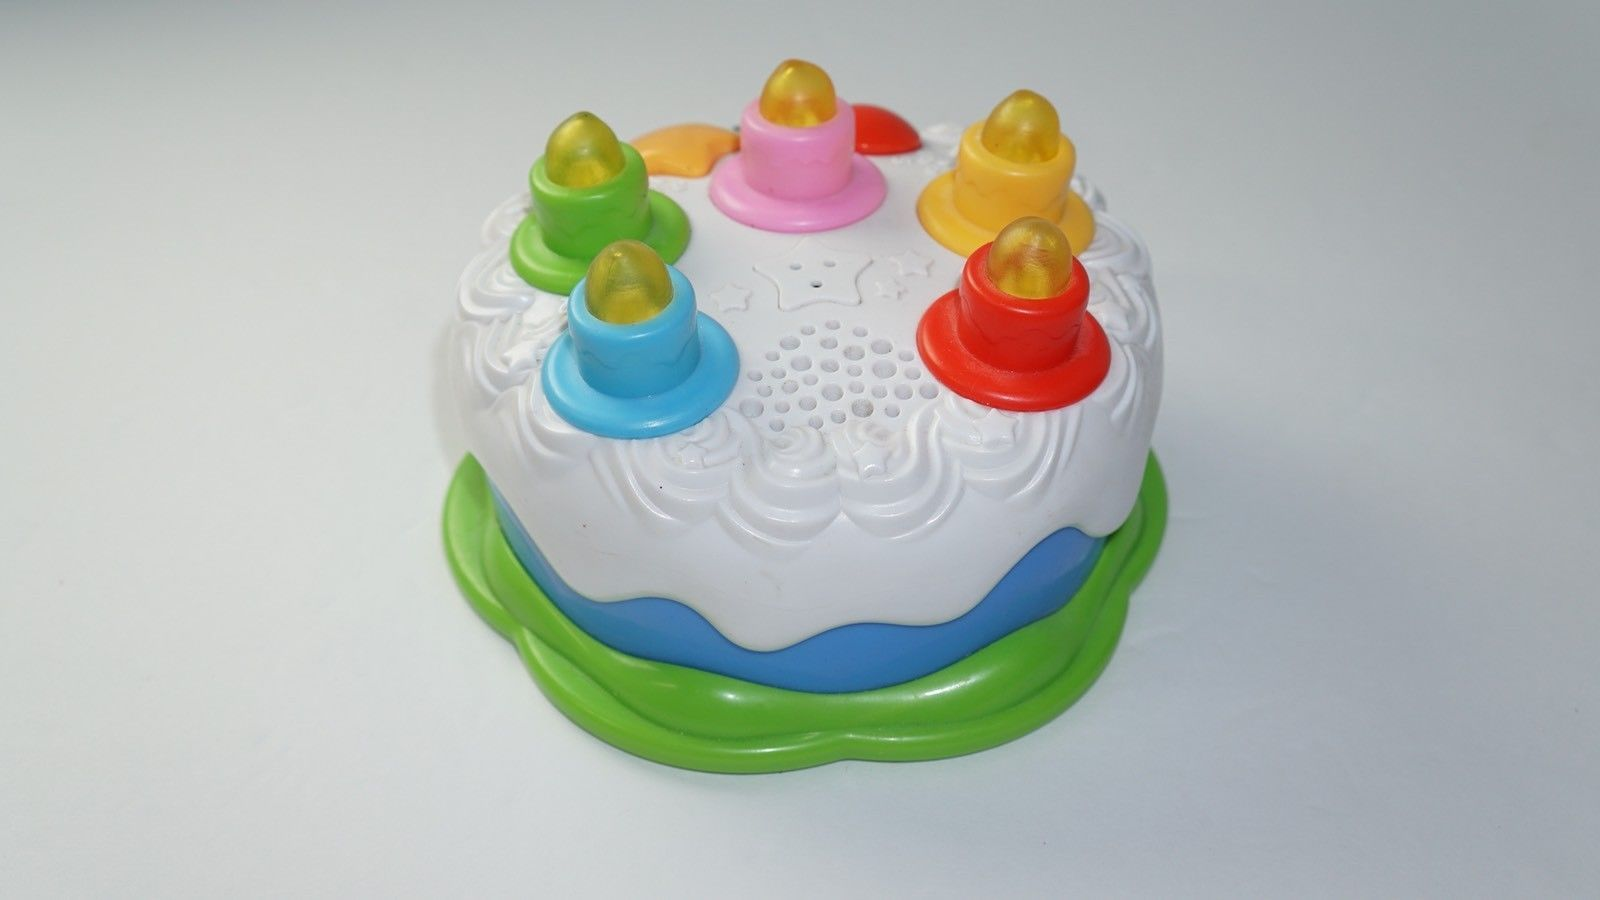 LeapFrog Birthday Cake Counting Candles Musical Light Up Learning Toy